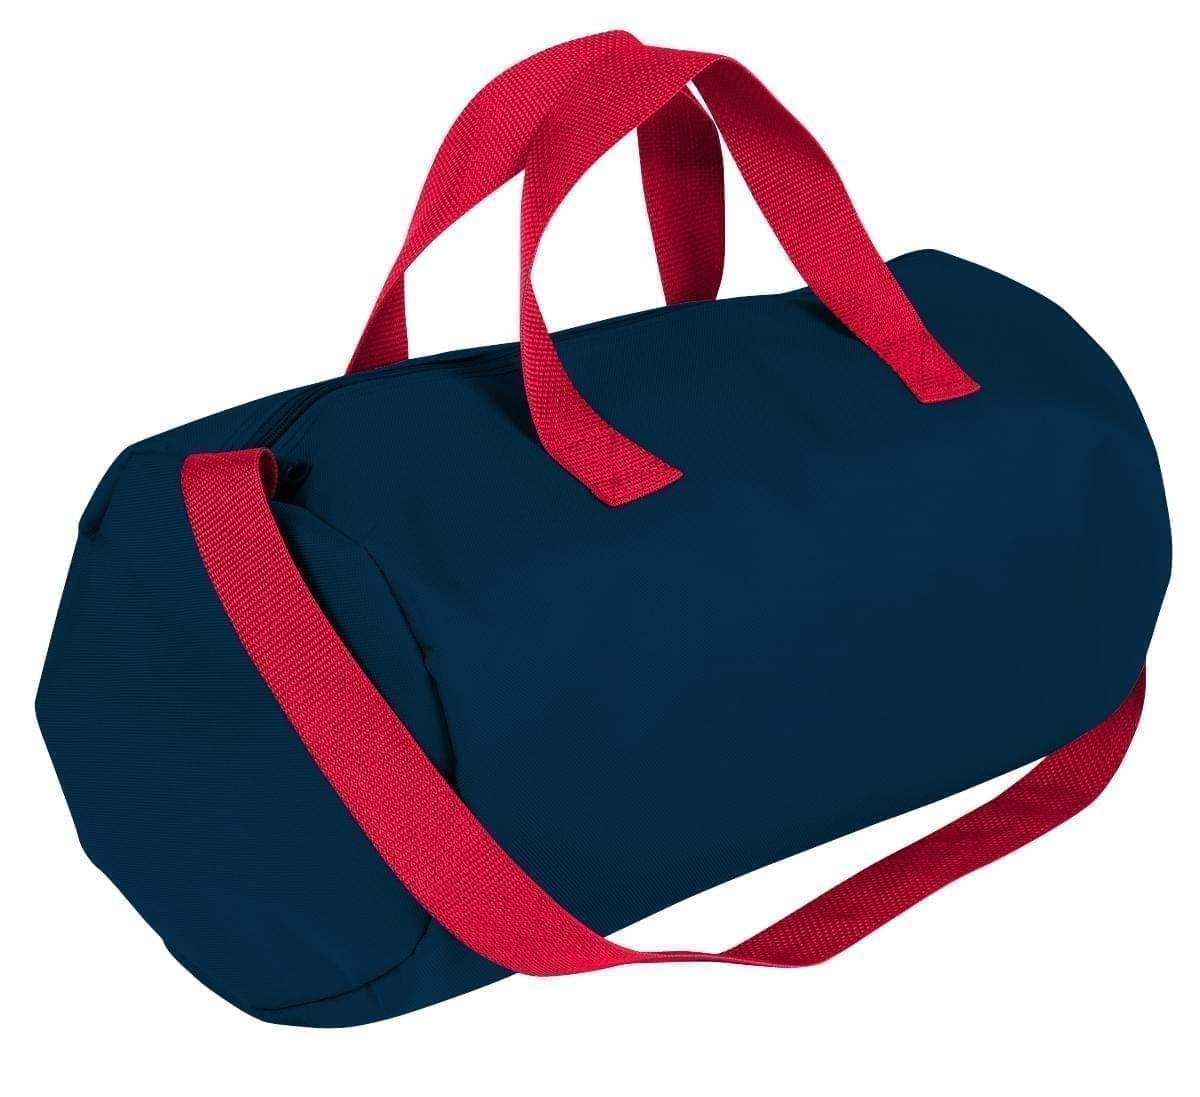 USA Made Nylon Poly Gym Roll Bags, Navy-Red, ROCX31AAW2